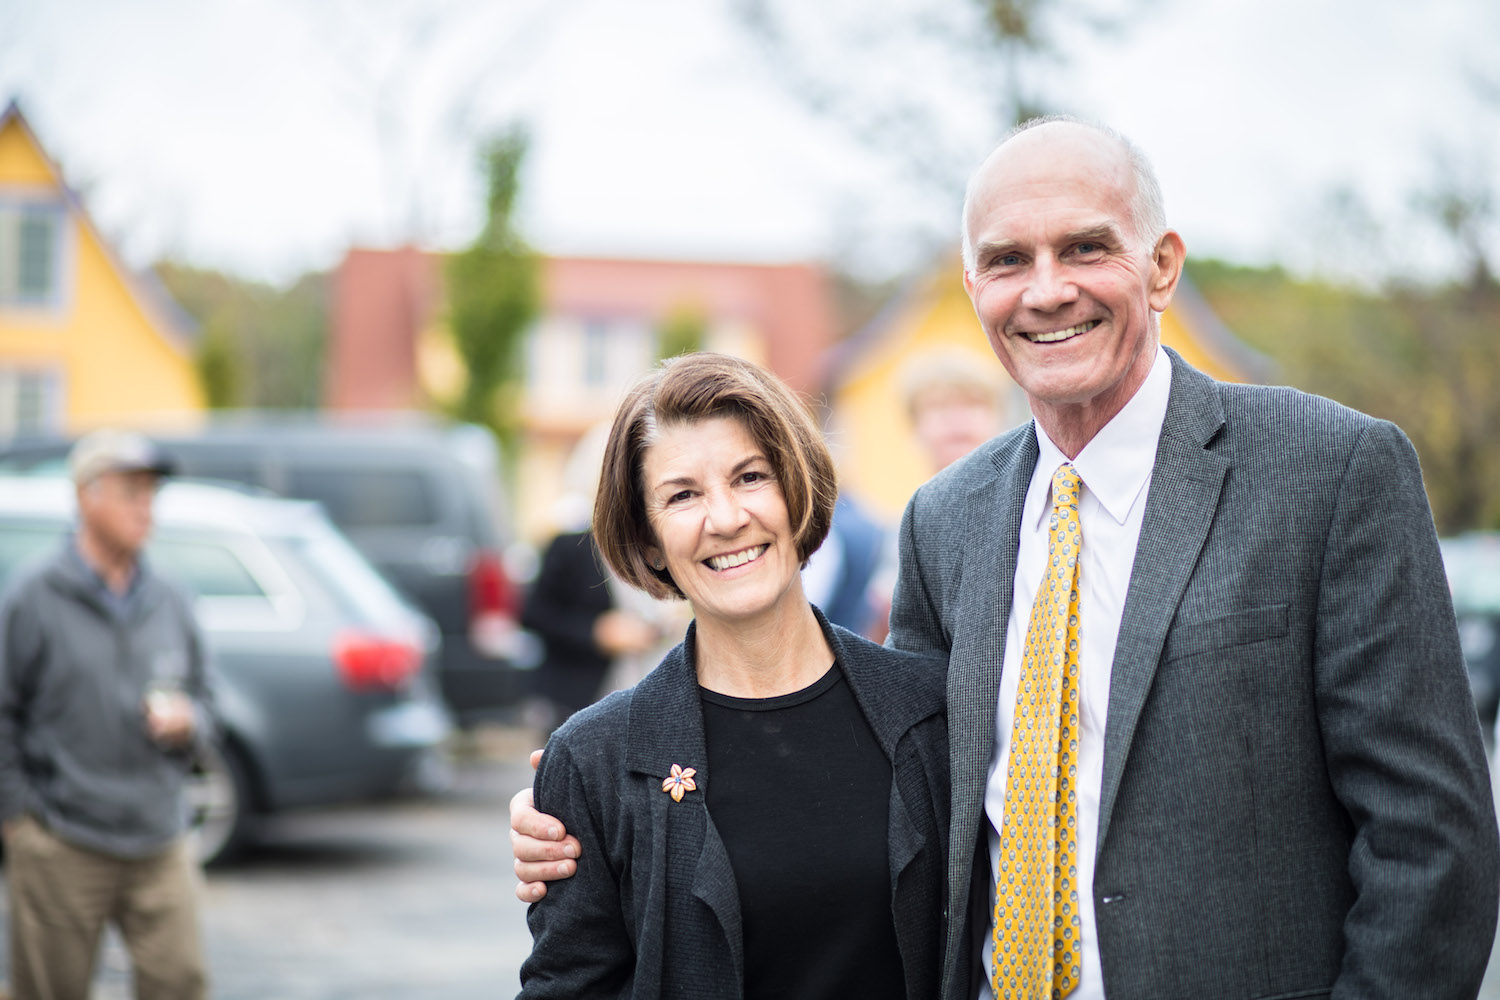 Owner and builder Bruno Schickel with his wife Amy Dickinson